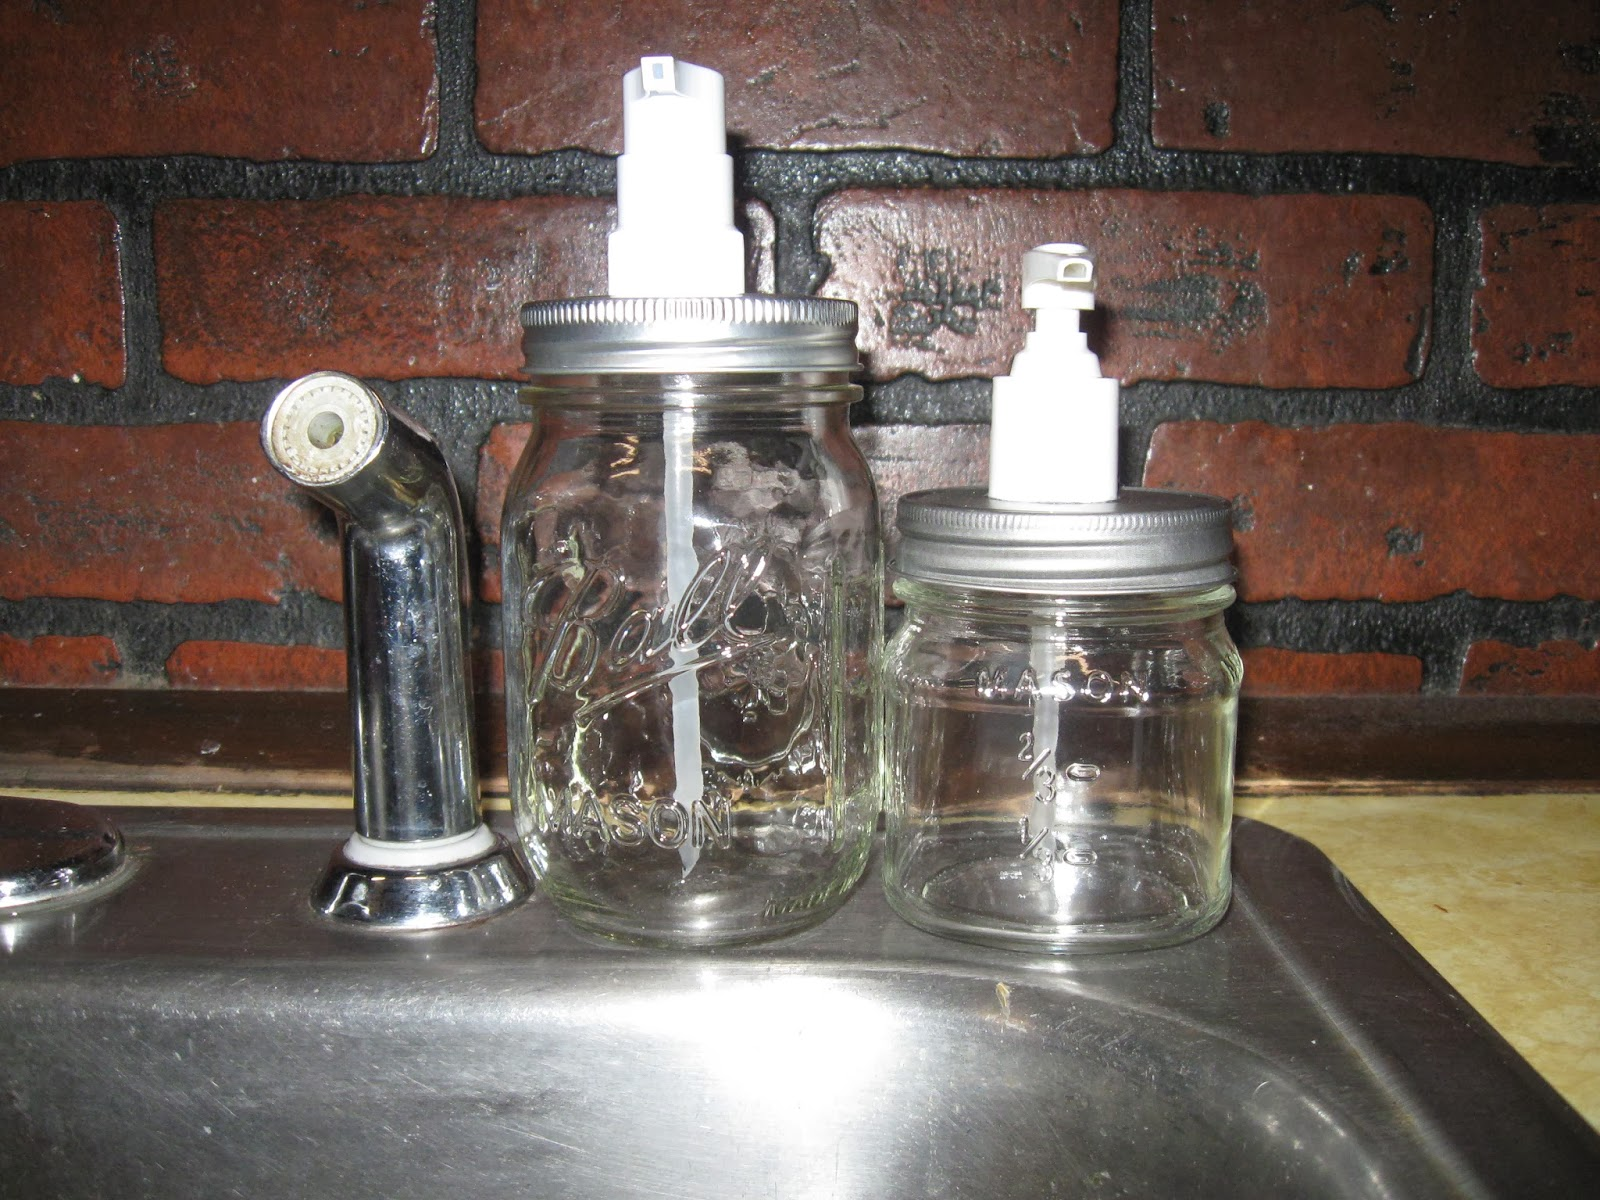 https://www.etsy.com/listing/173611153/ball-mason-jar-soap-or-lotion-dispenser?ref=shop_home_active_16